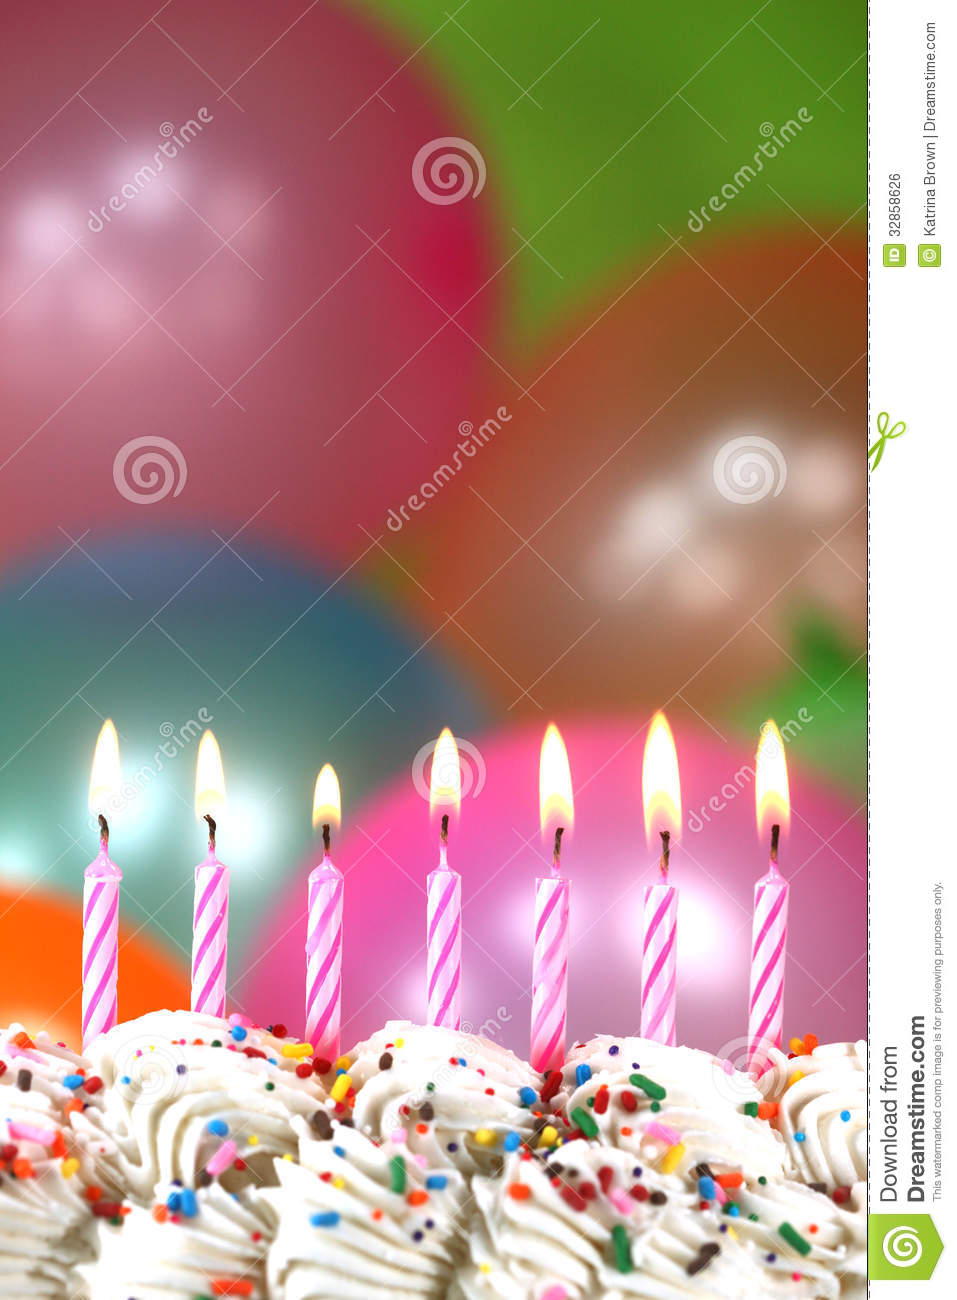 Celebration With Balloons Candles And Cake Royalty Free